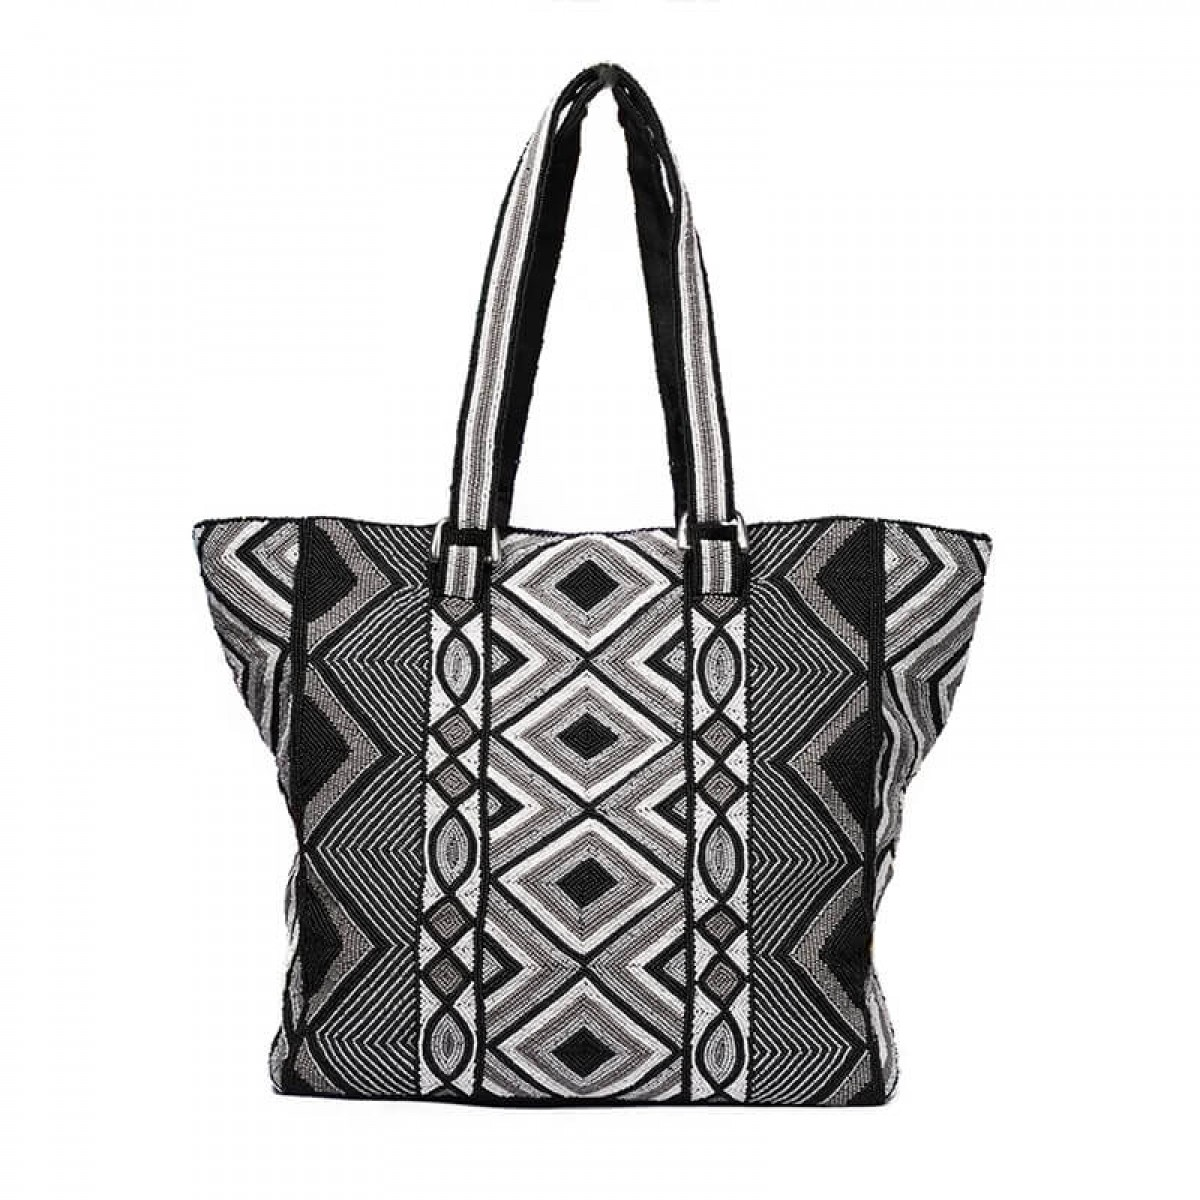 Handcrafted beaded black tote bag